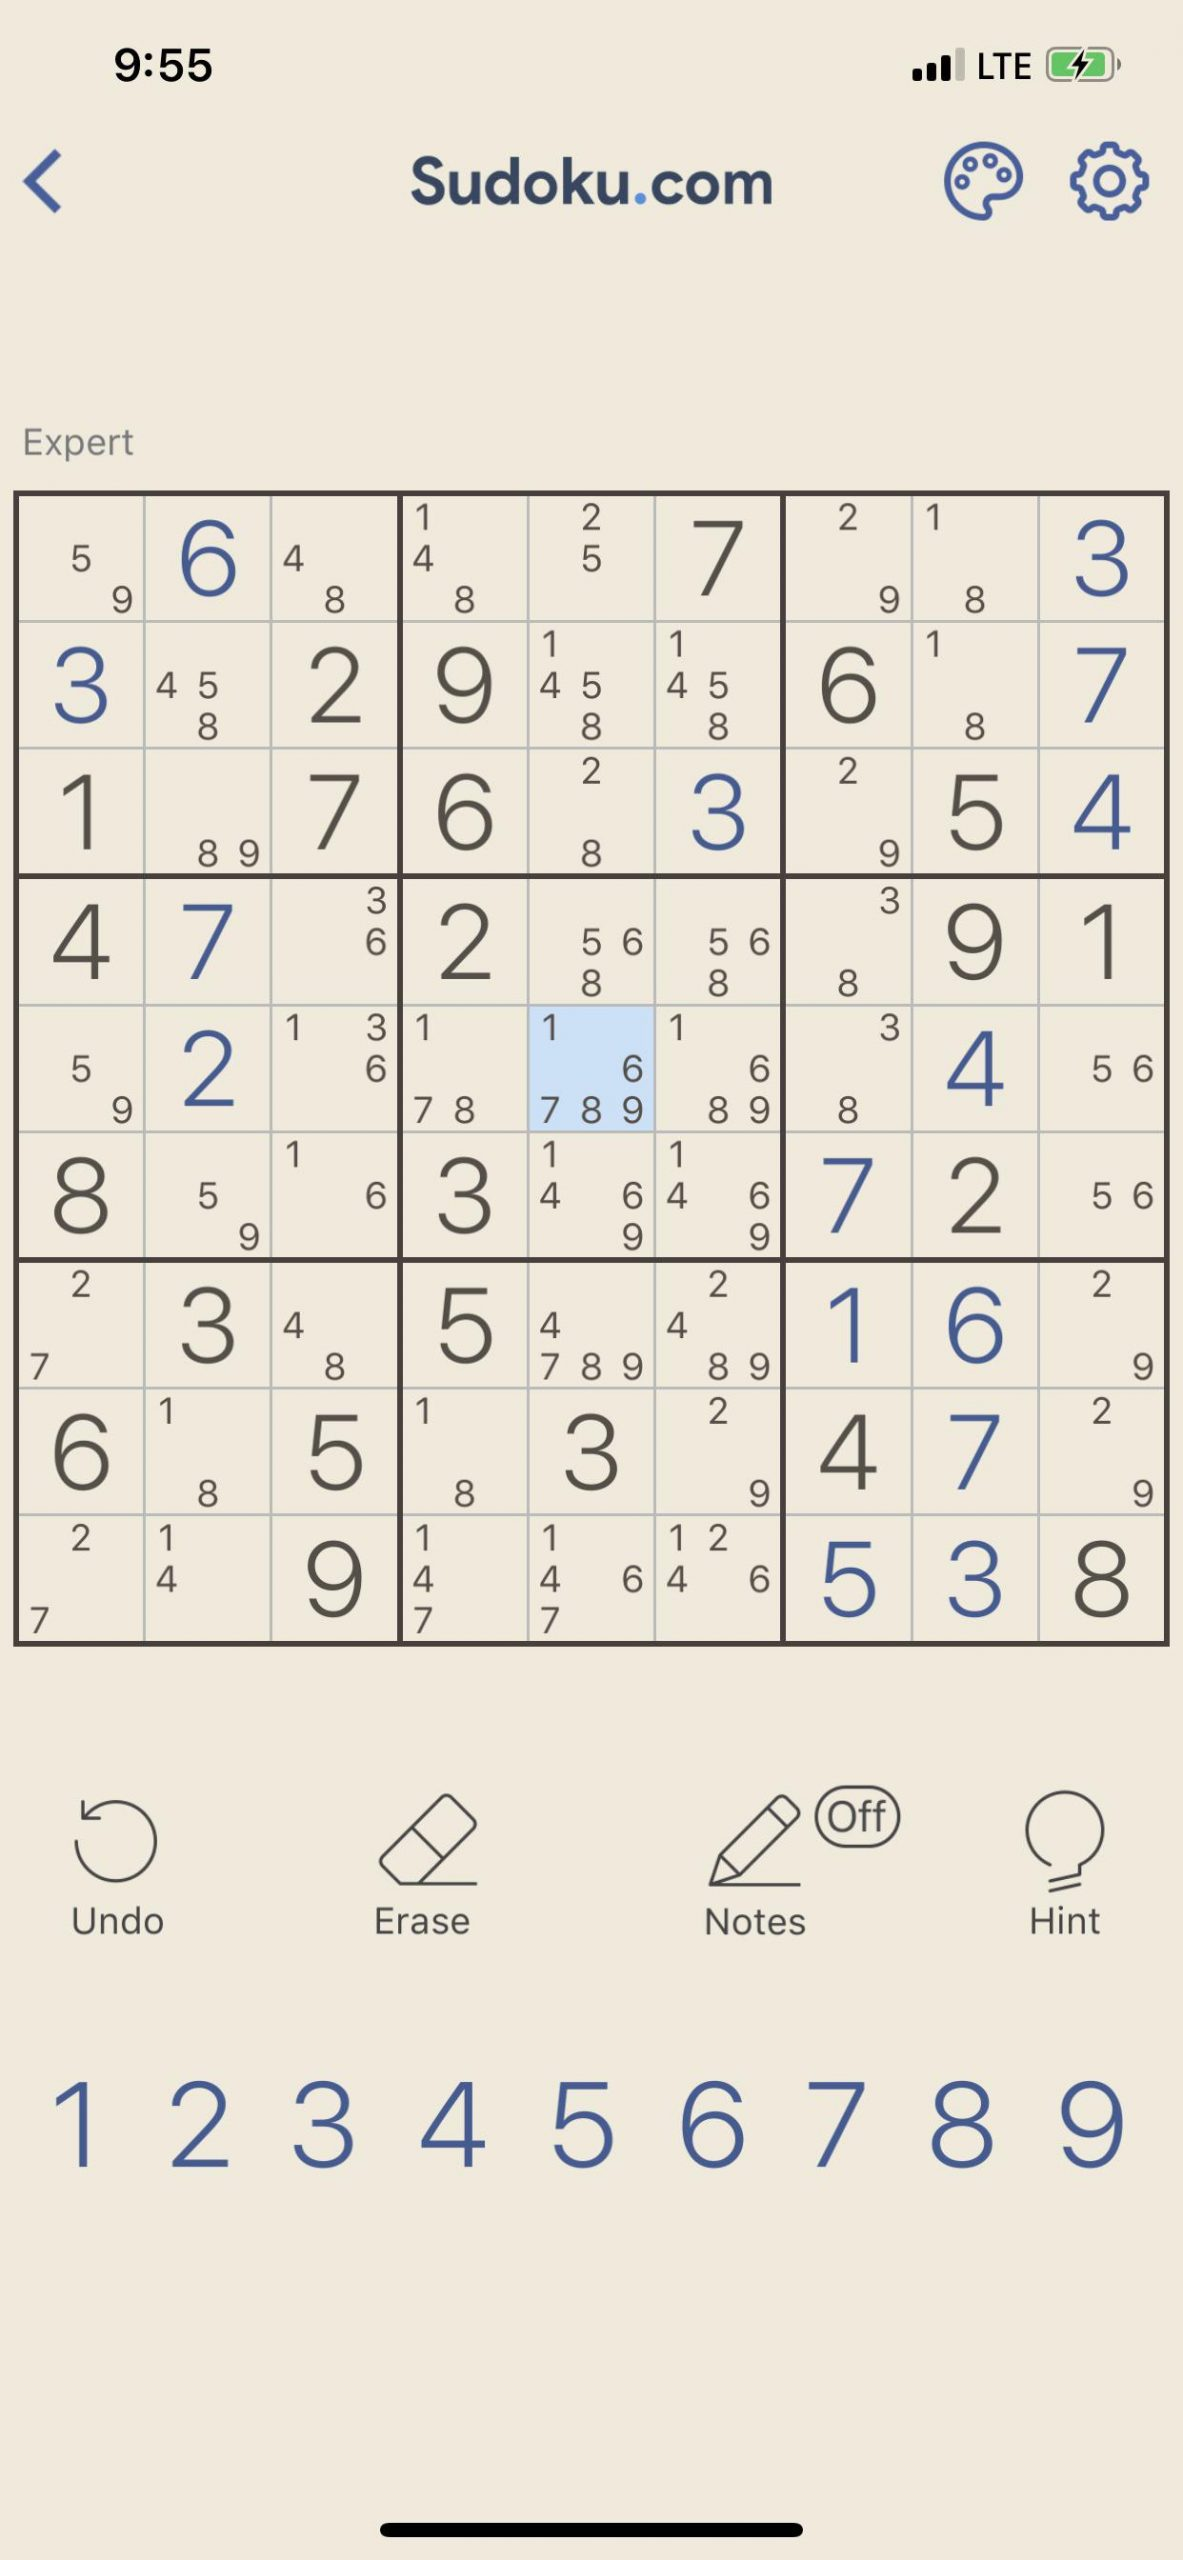 Probably The Hardest Sudoku Puzzle I've Ever Played. Me And